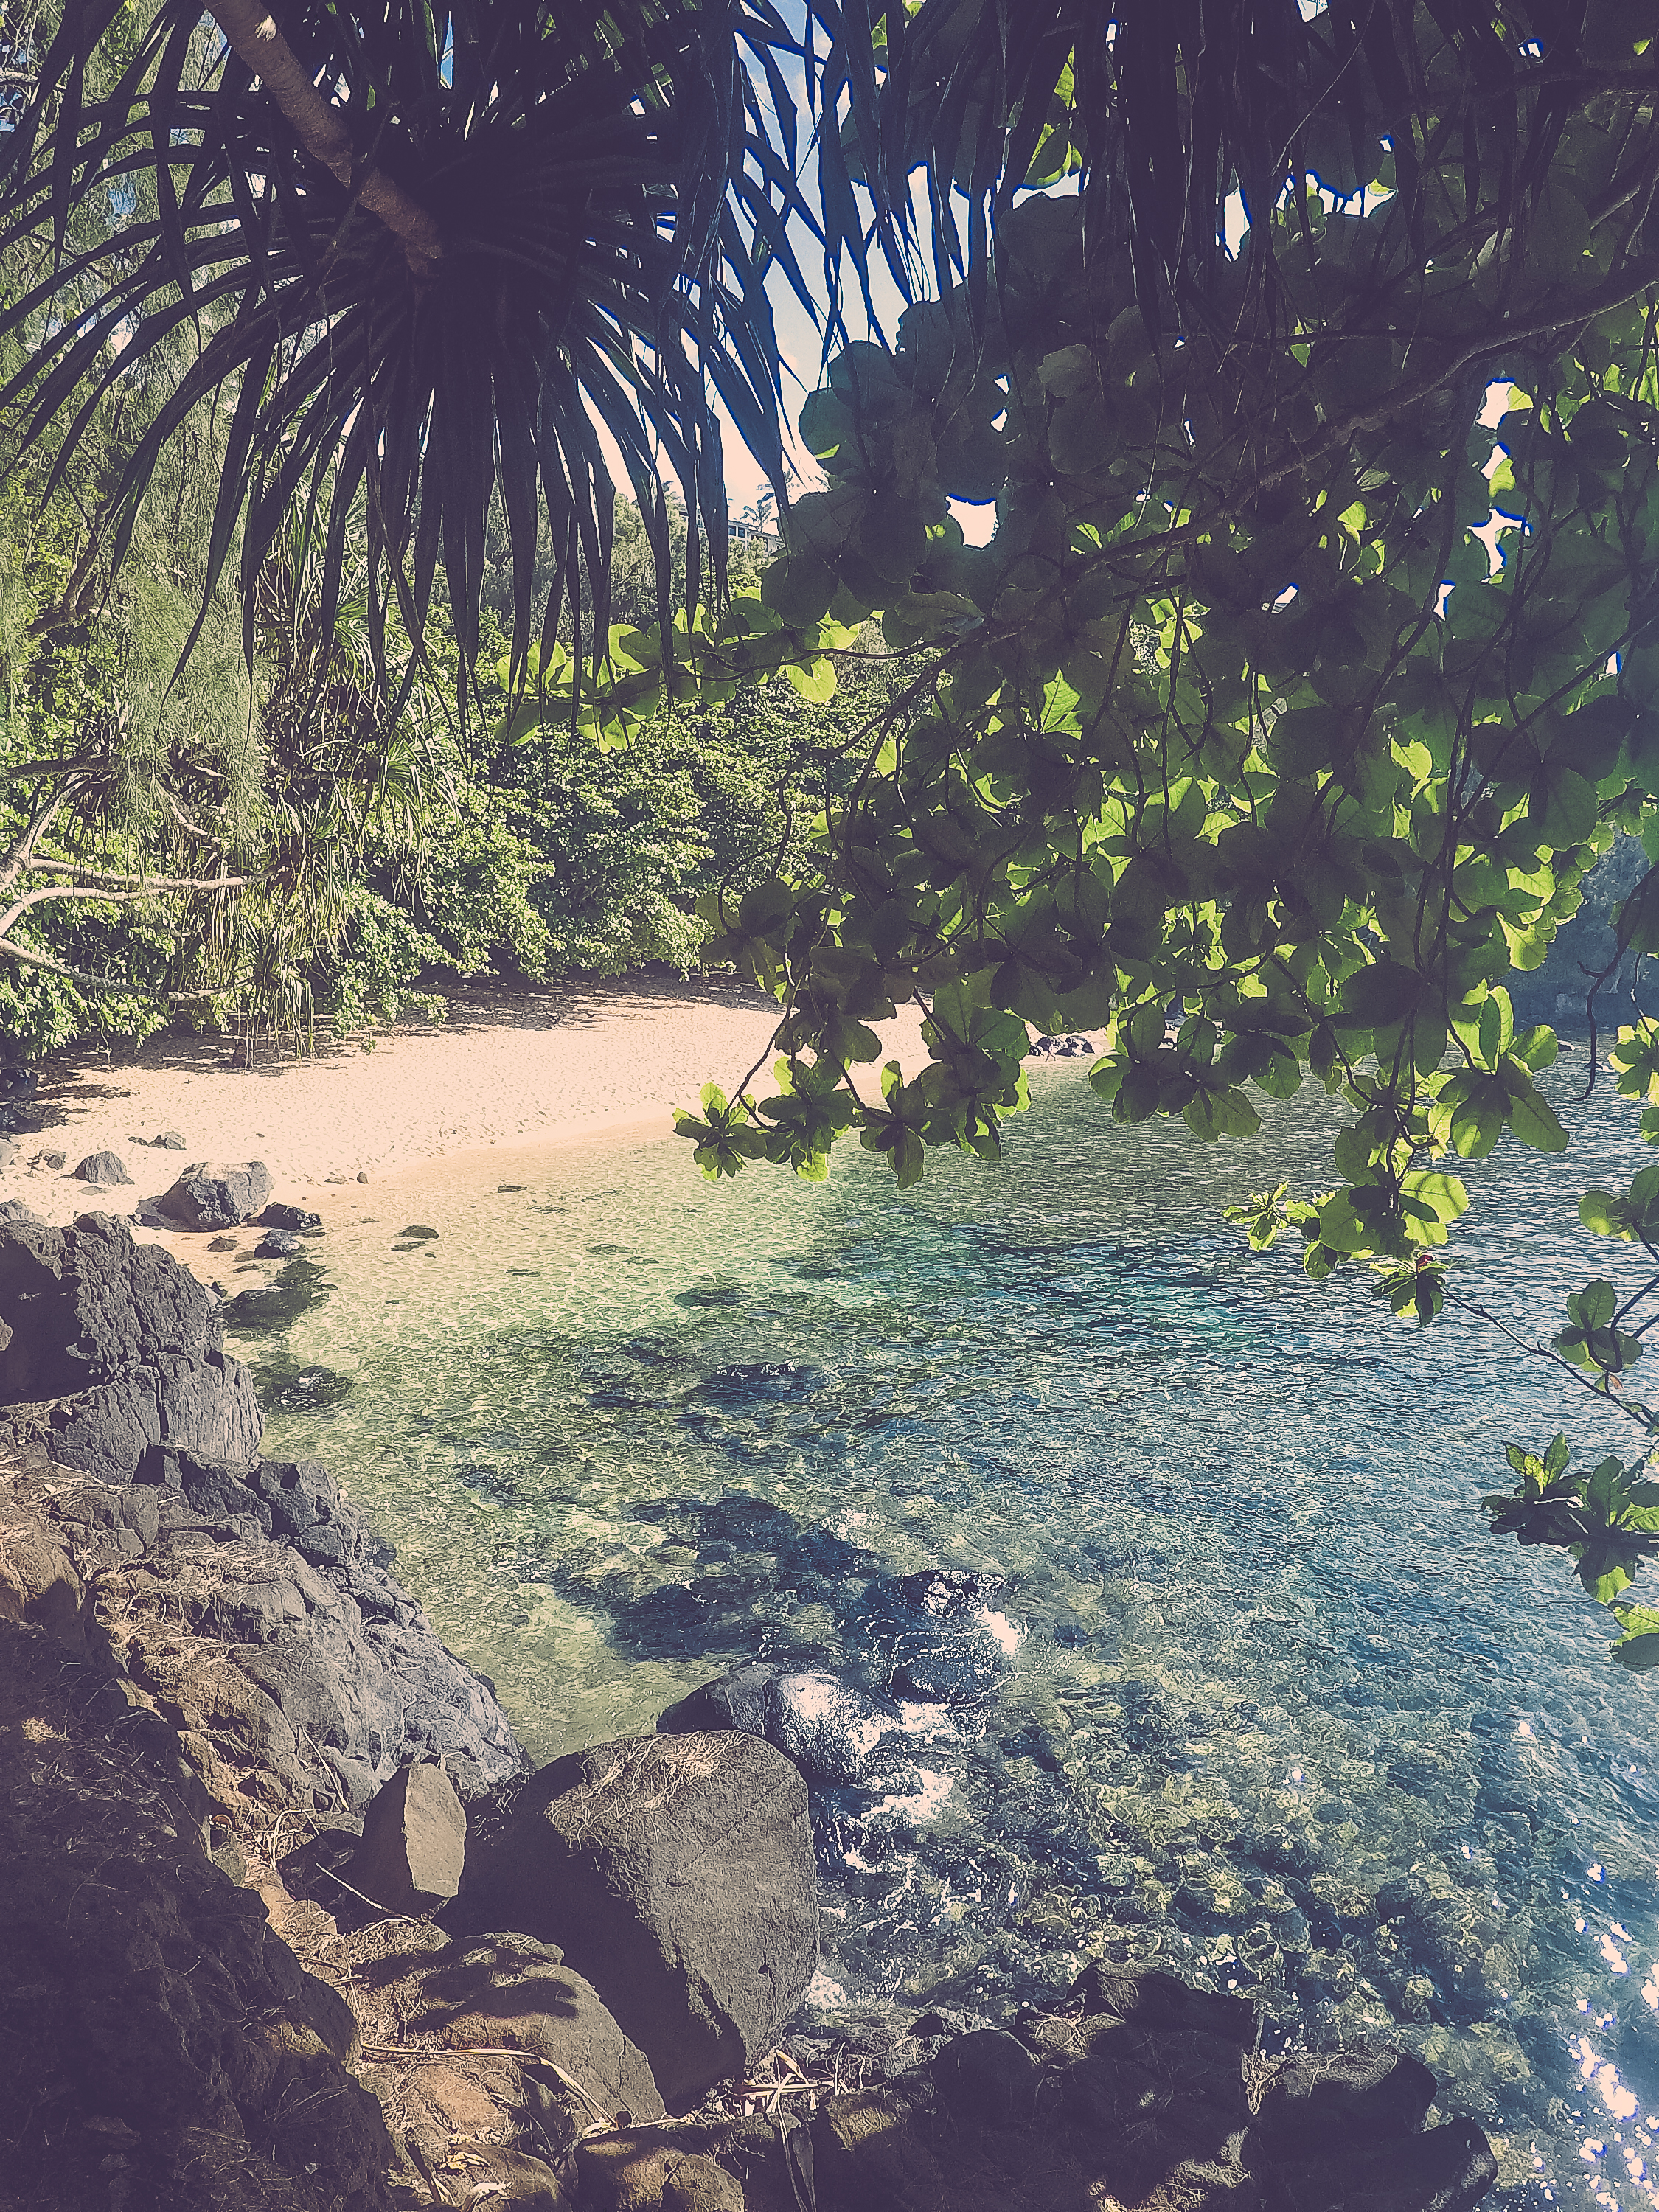 This is the same beach I mentioned before. This is just a go pro shot of the beautiful water. There is plenty of shade from the trees so you don't need to bring much down, just food, water, and snorkel gear :) Hike to the far end for our favorite spot that we swam on the entire trip (around the rocky ledge). If you watch the video below, you'll see the turtles and Riley diving down right here, it was so gorgeous!